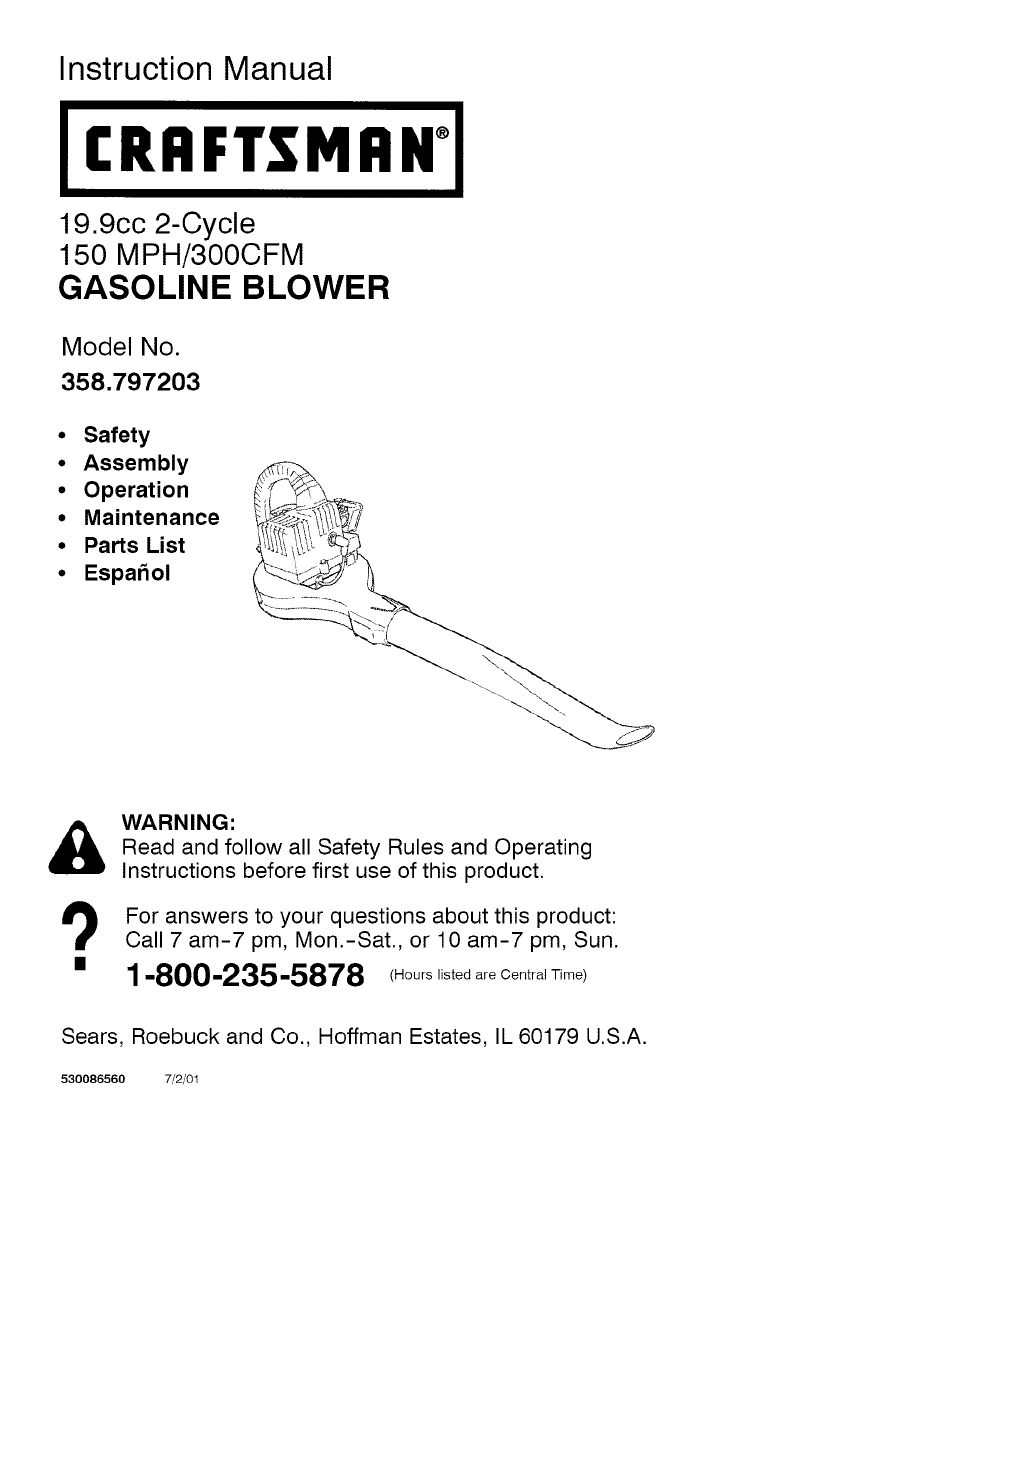 Wiring Database 2020  29 Craftsman Leaf Blower Fuel Line Diagram